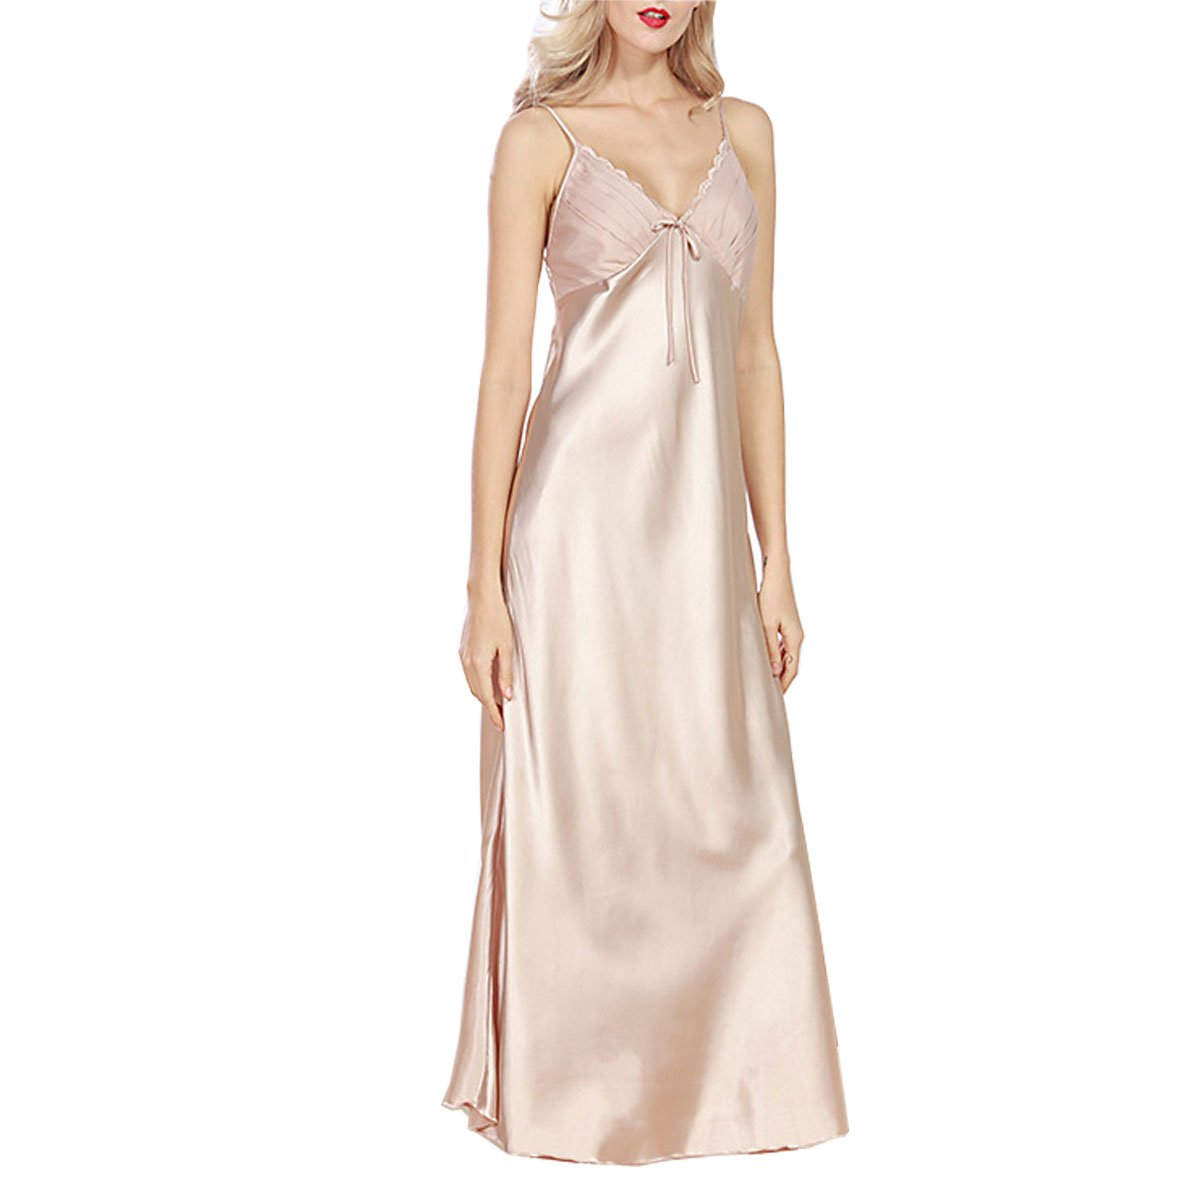 Globalwells Women's Satin Silk Slip Long Nightgown Pajamas Sleepwear Dress SWEI CANWD05